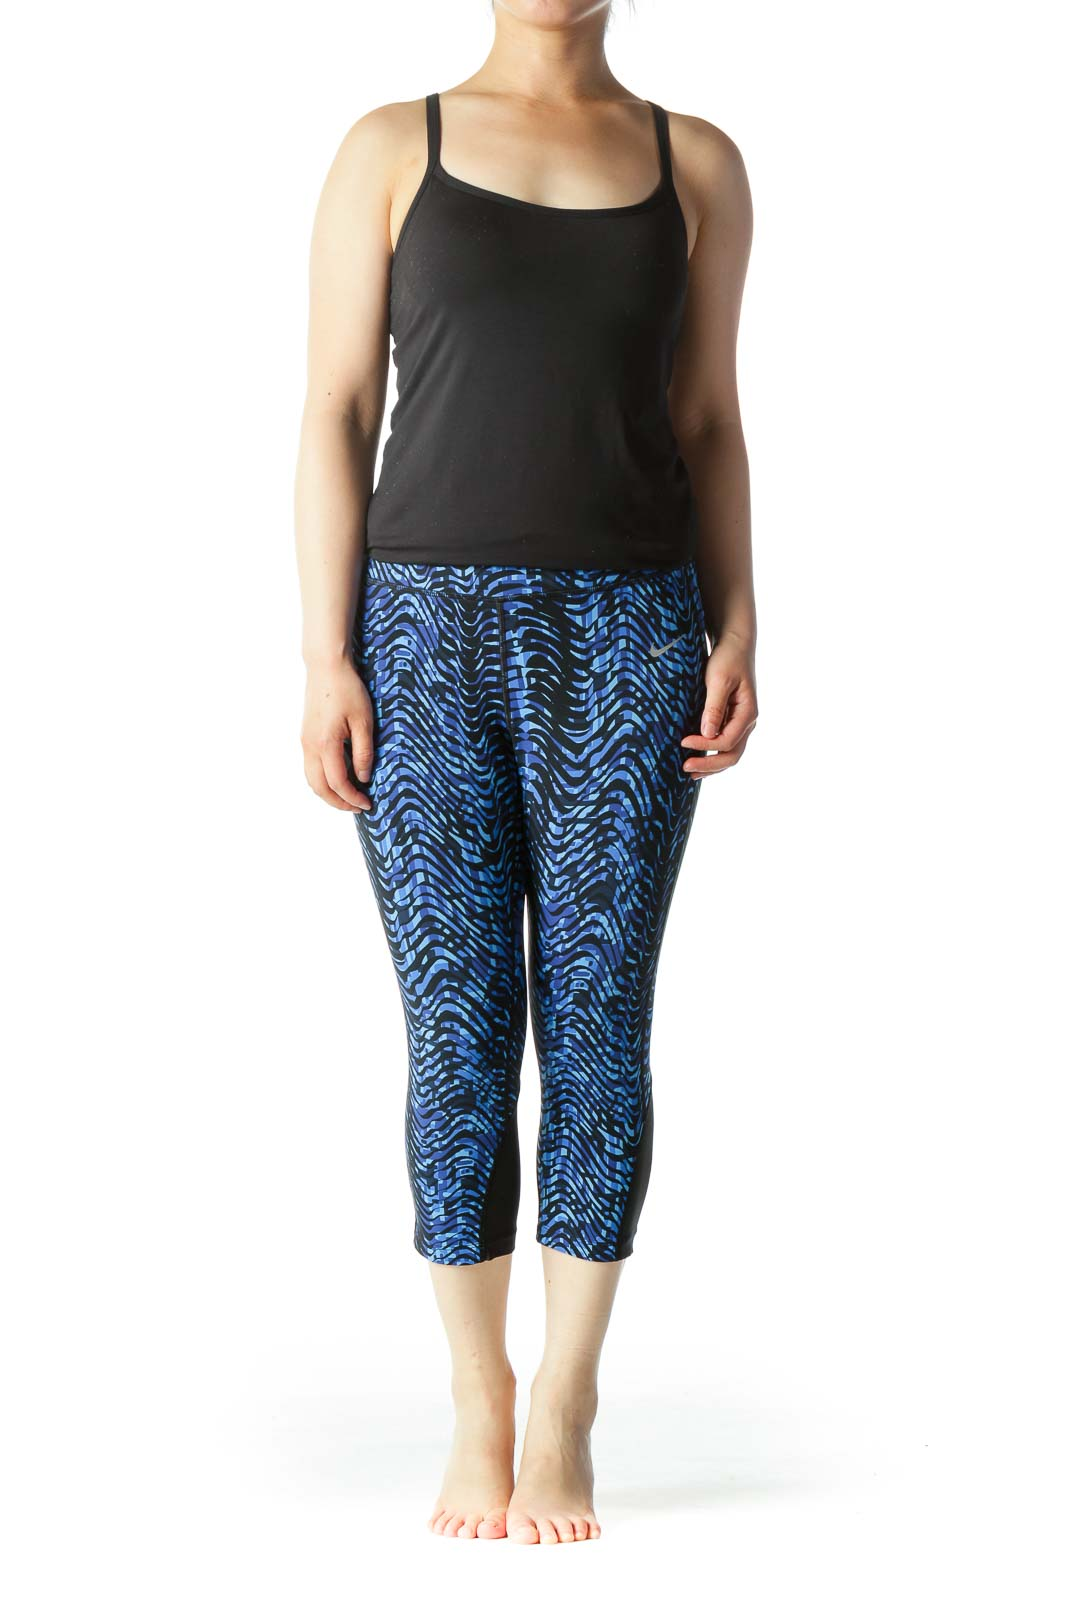 Blue & Black Cropped Leggings with Mesh & Reflective Details & Front/Back Pockets